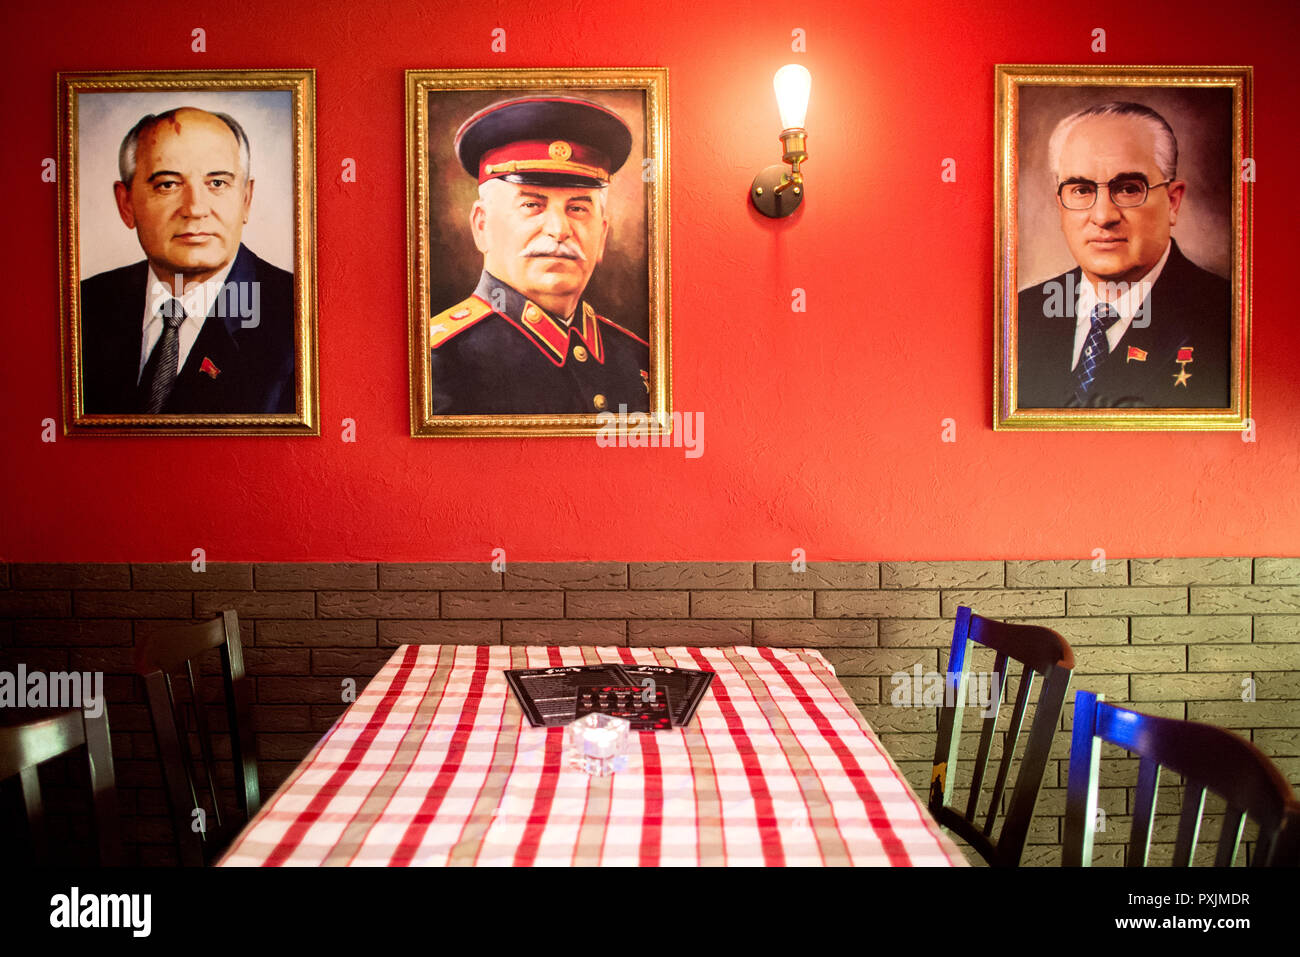 Hanover, Germany. 07th Apr, 2018. The portraits of former Soviet politicians Mikhail Gorbachev (l-r), Josef Stalin and Yuri Andropov hang in the KGB bar. With many Soviet relics, the bar in the city centre of Hanover is reminiscent of the former USSR. Credit: Hauke-Christian Dittrich/dpa/Alamy Live News - Stock Image